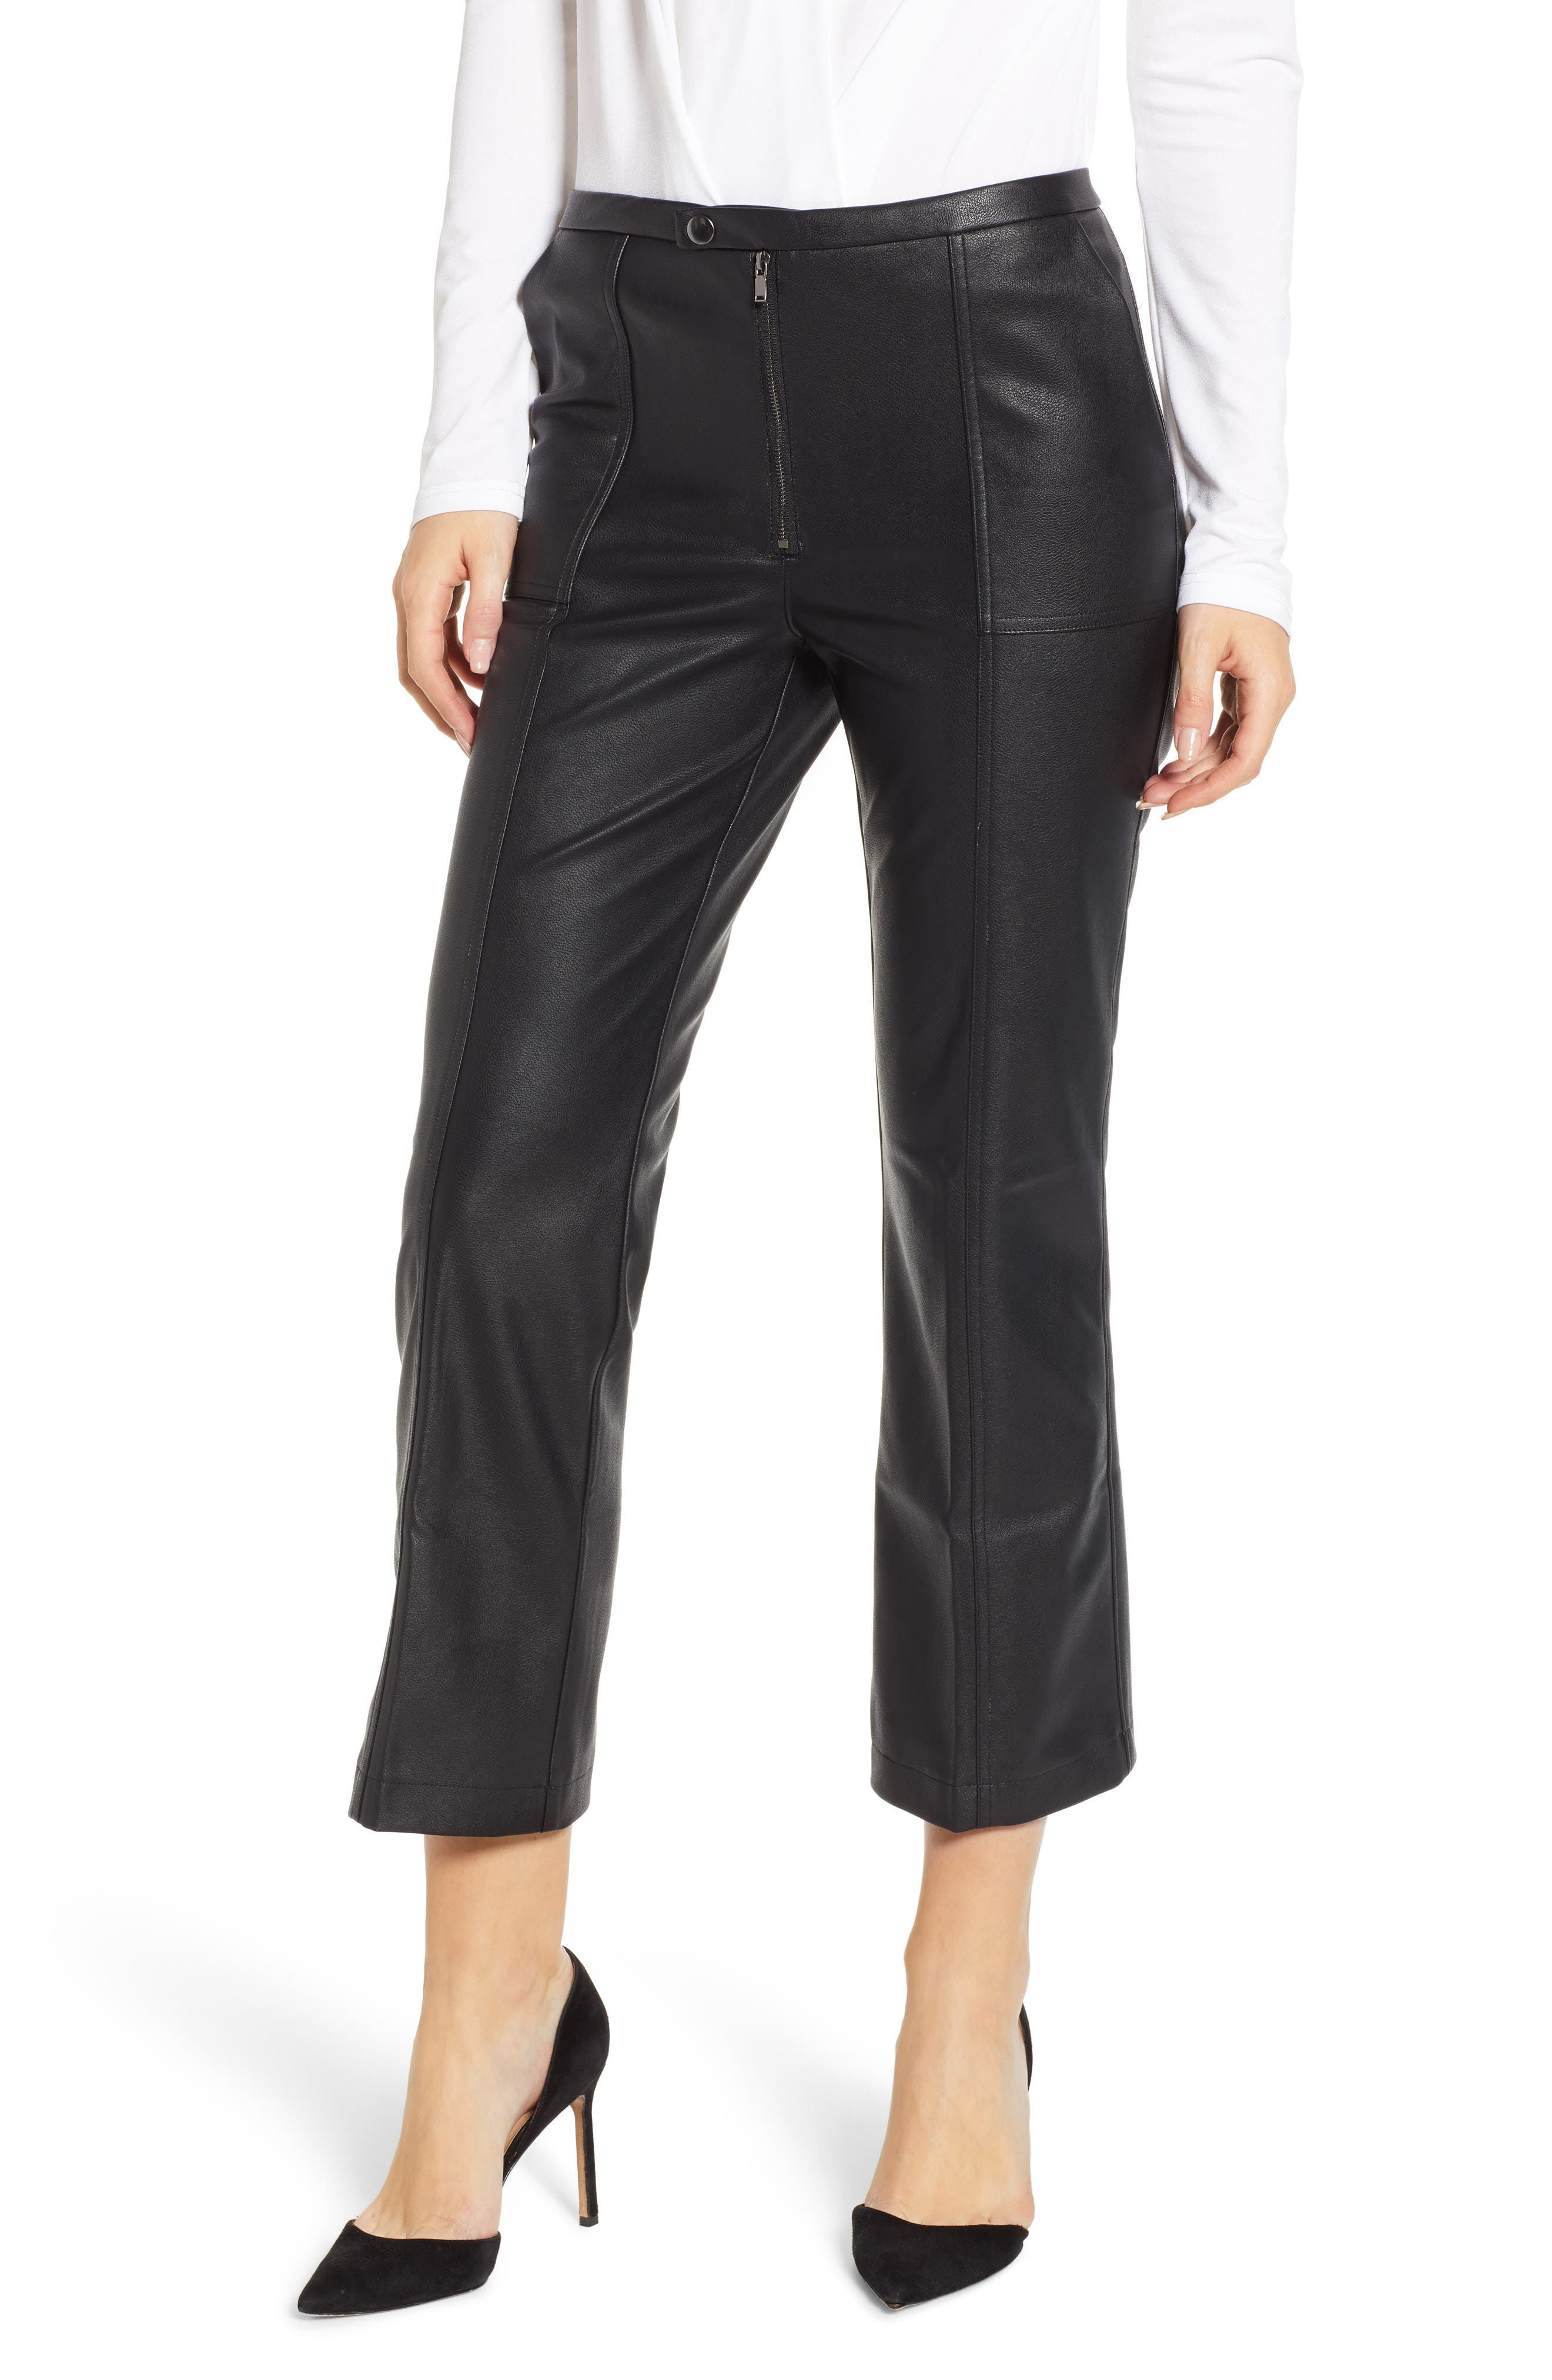 DAVID LERNER Pintuck Flare Faux Leather Trousers, Main, color, 001